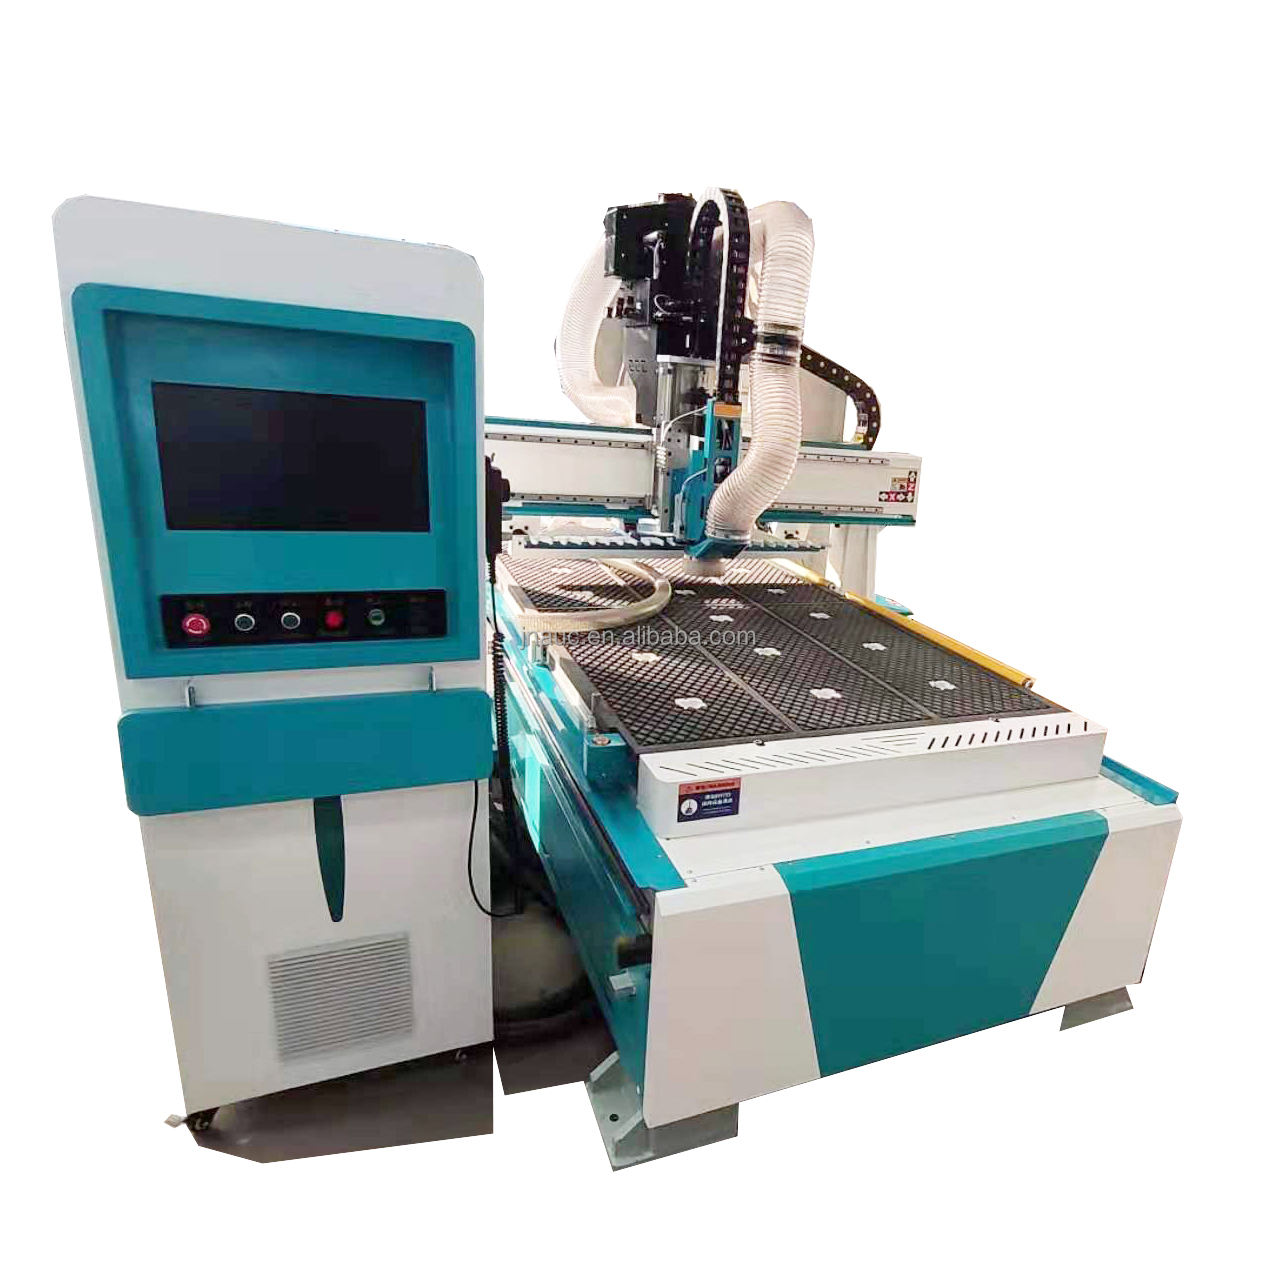 Hsd Hqd 9KW Atc Cnc Hout Router/1325 <span class=keywords><strong>Meubels</strong></span> Graveren Snijmachine/1530 Mdf Kast Carving Liner Cnc router